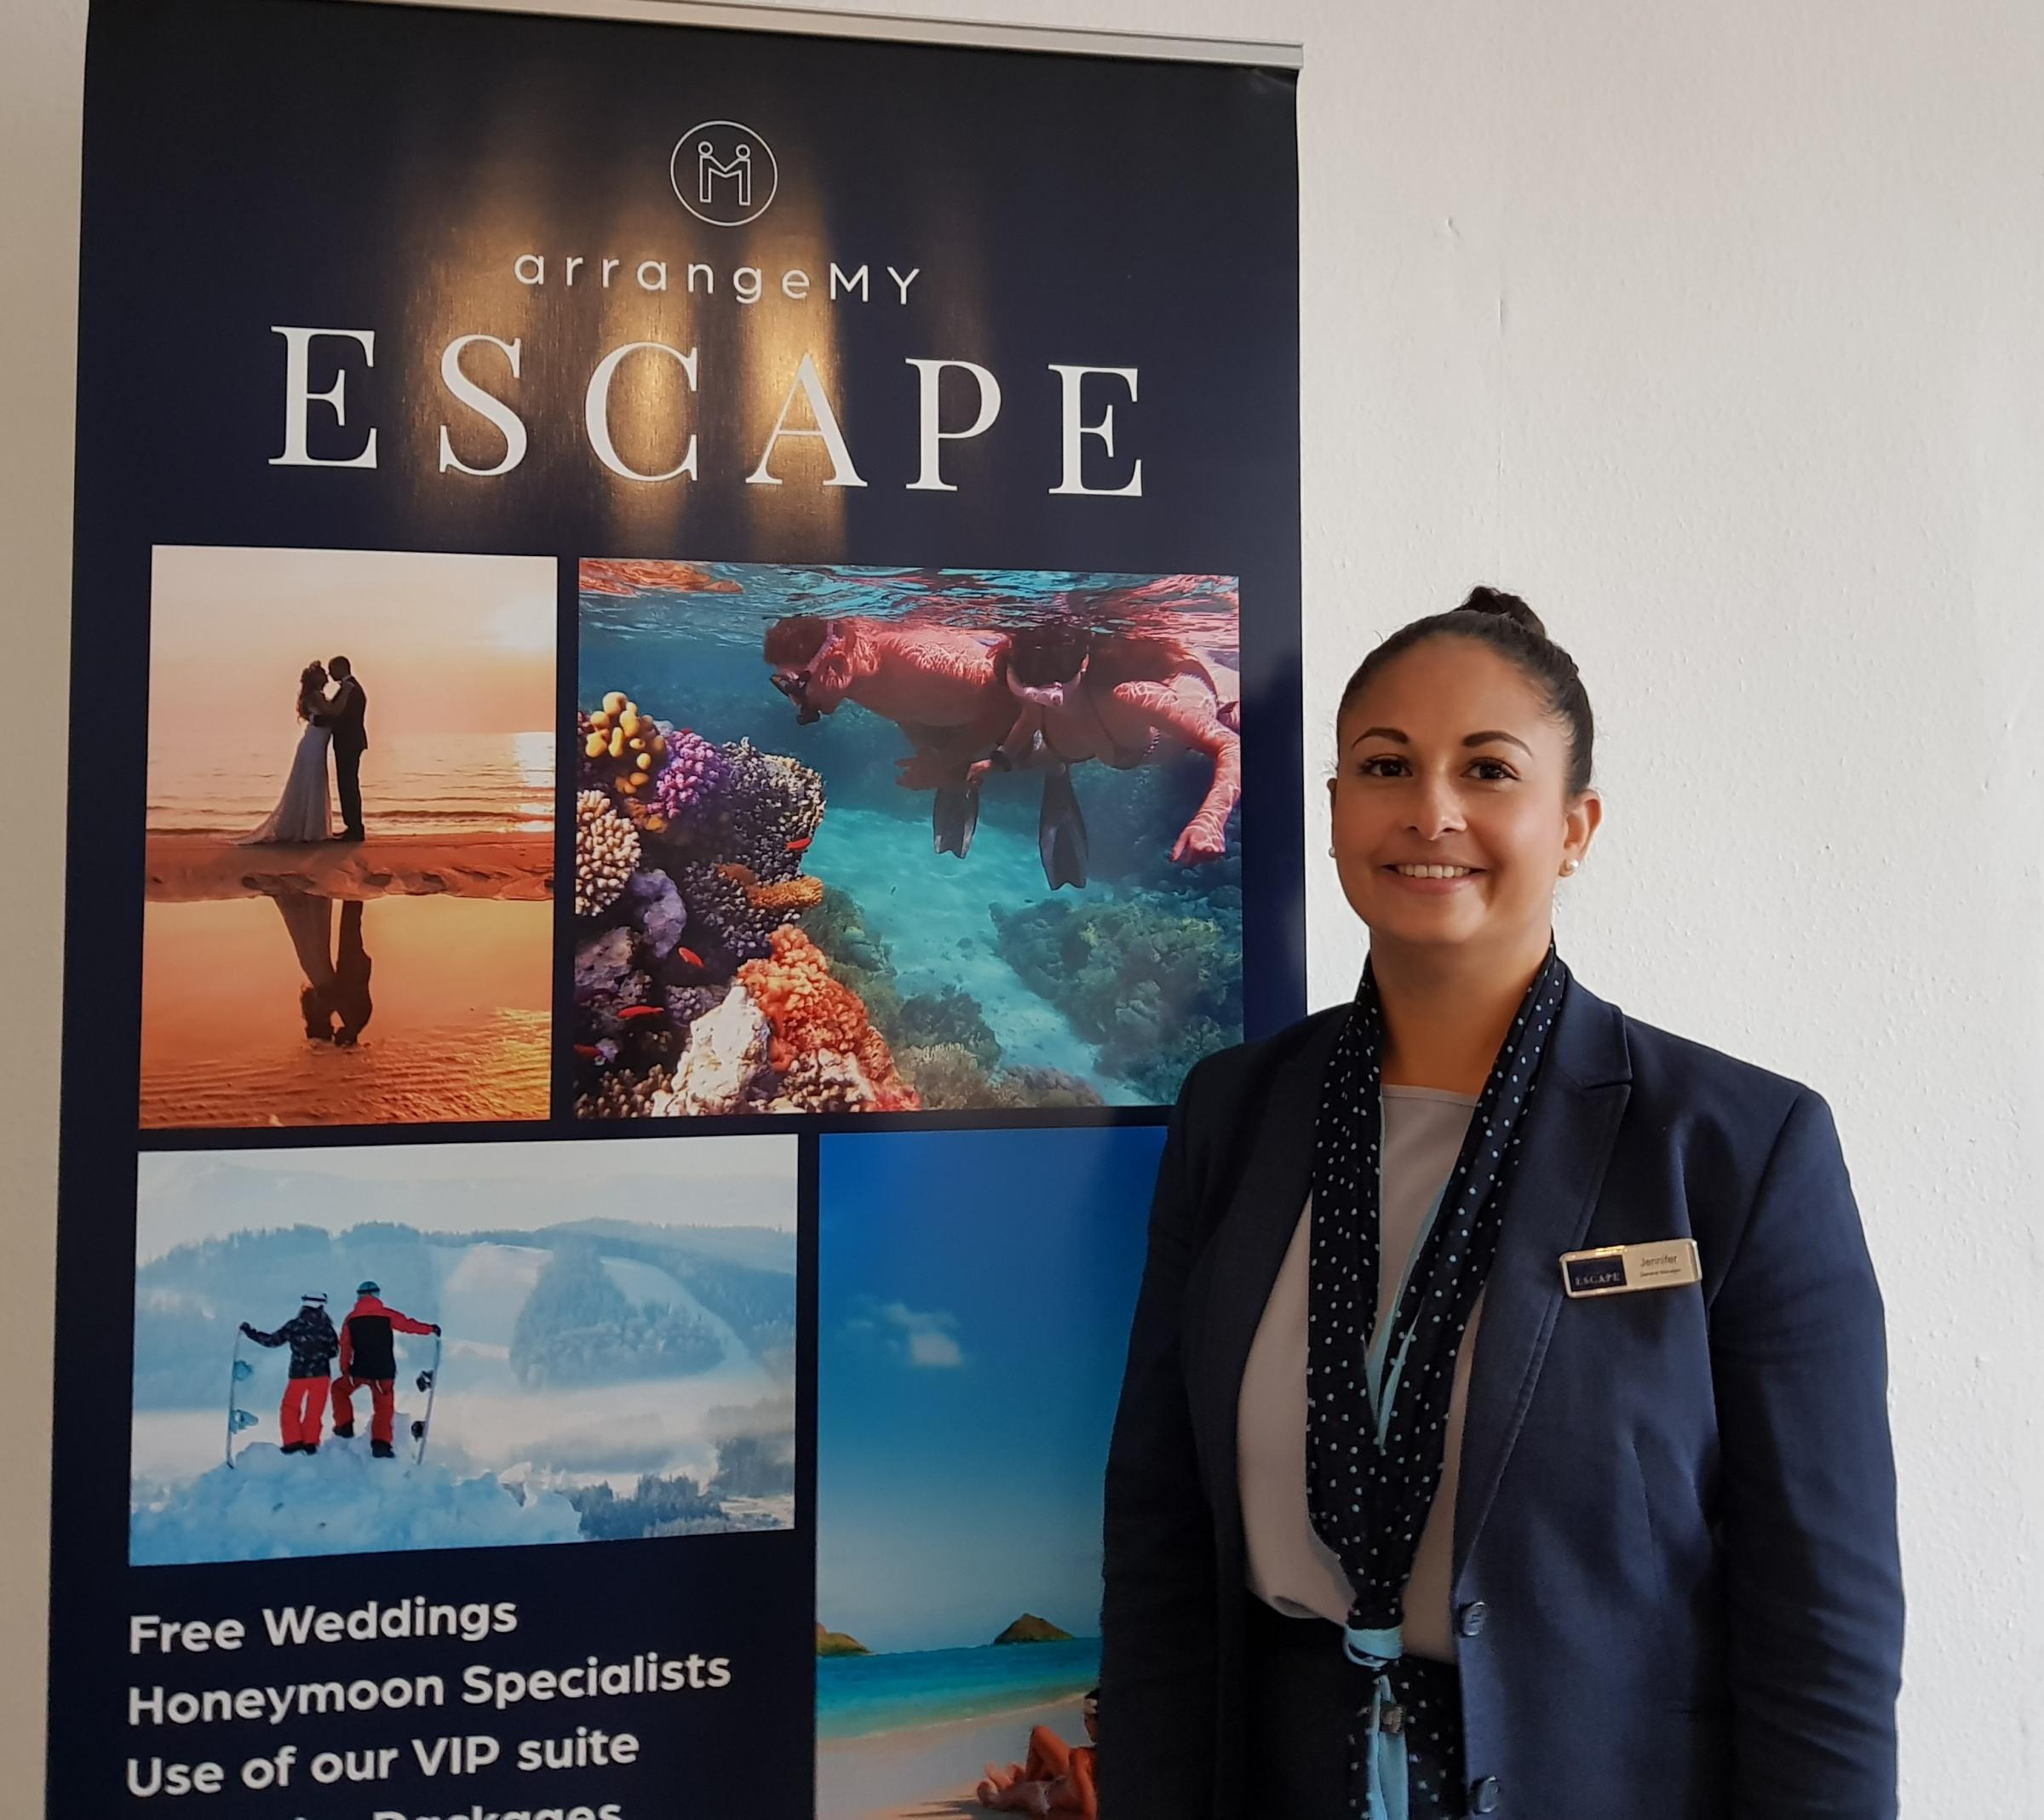 TRAVEL: Jennifer Lynch, general manager at Arrange My Escape in Mealcheapen Street